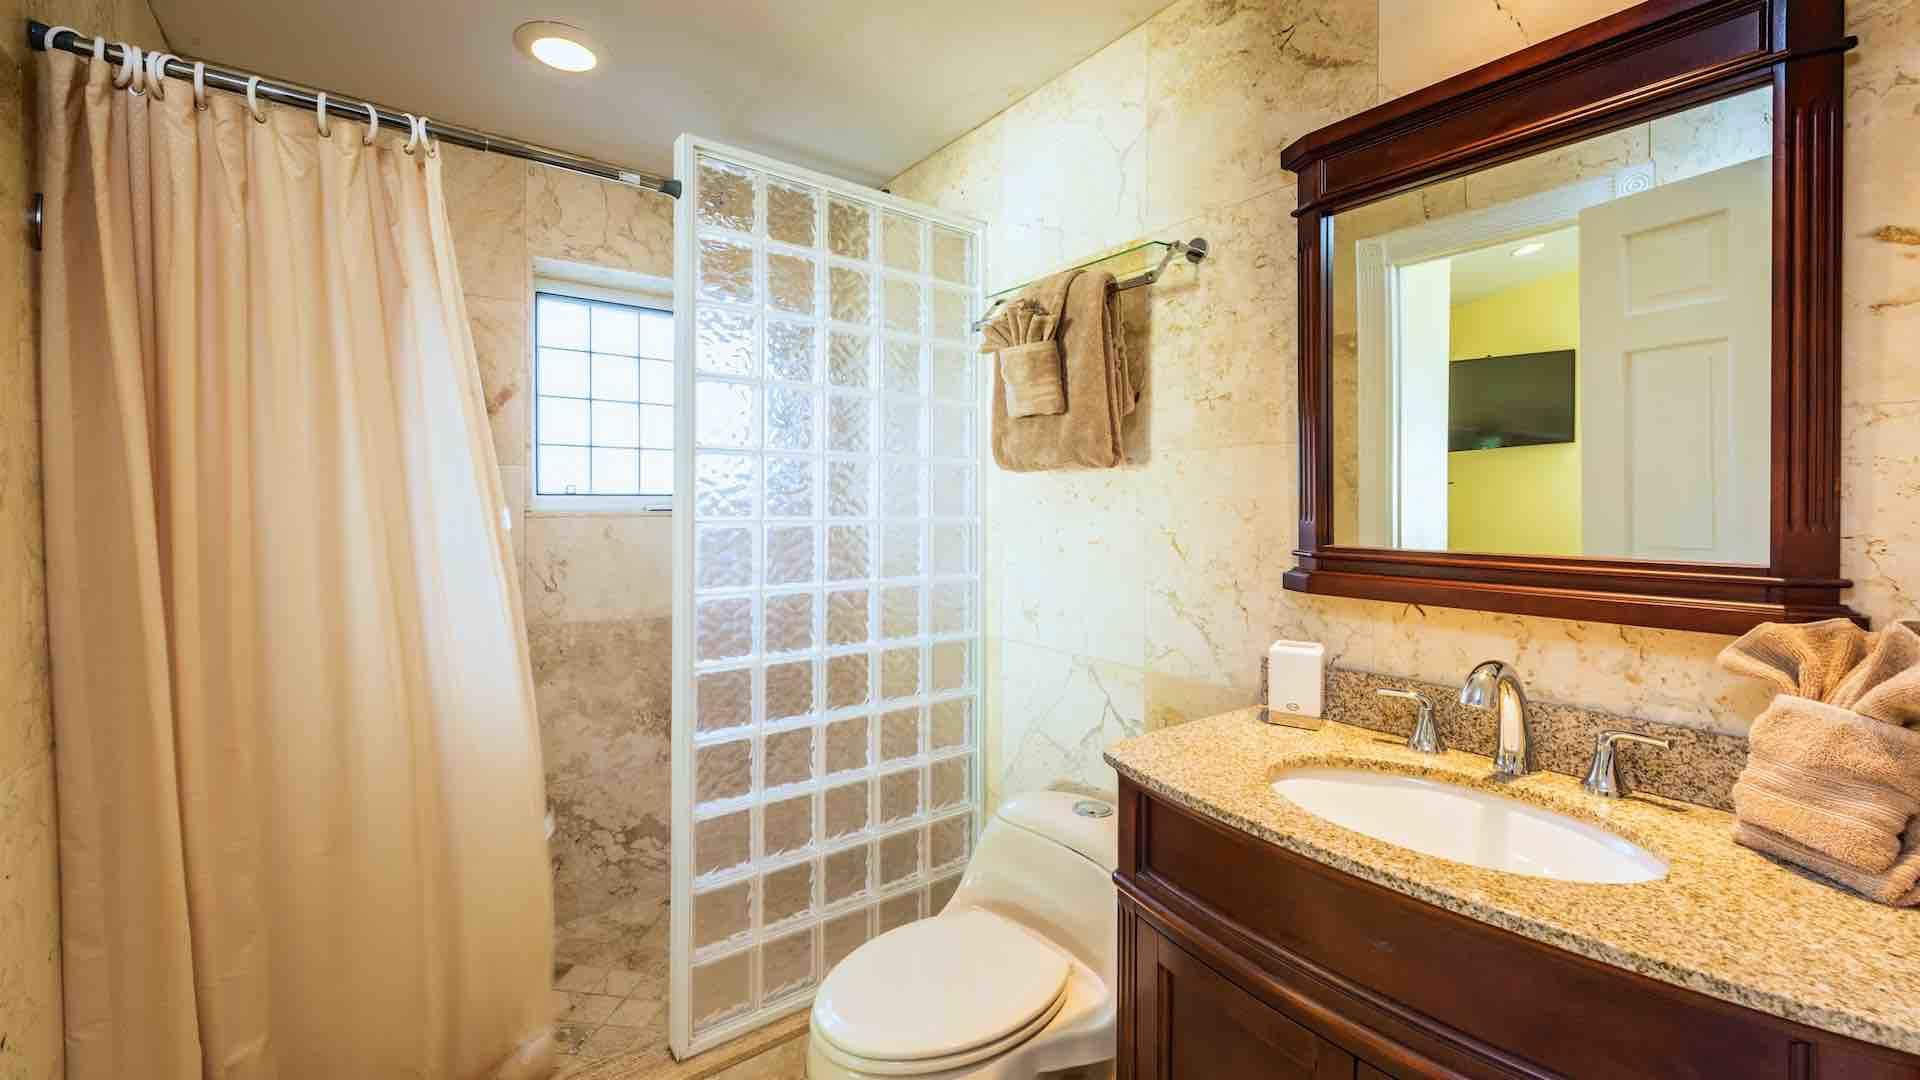 The first master bathroom has a large walk-in shower...